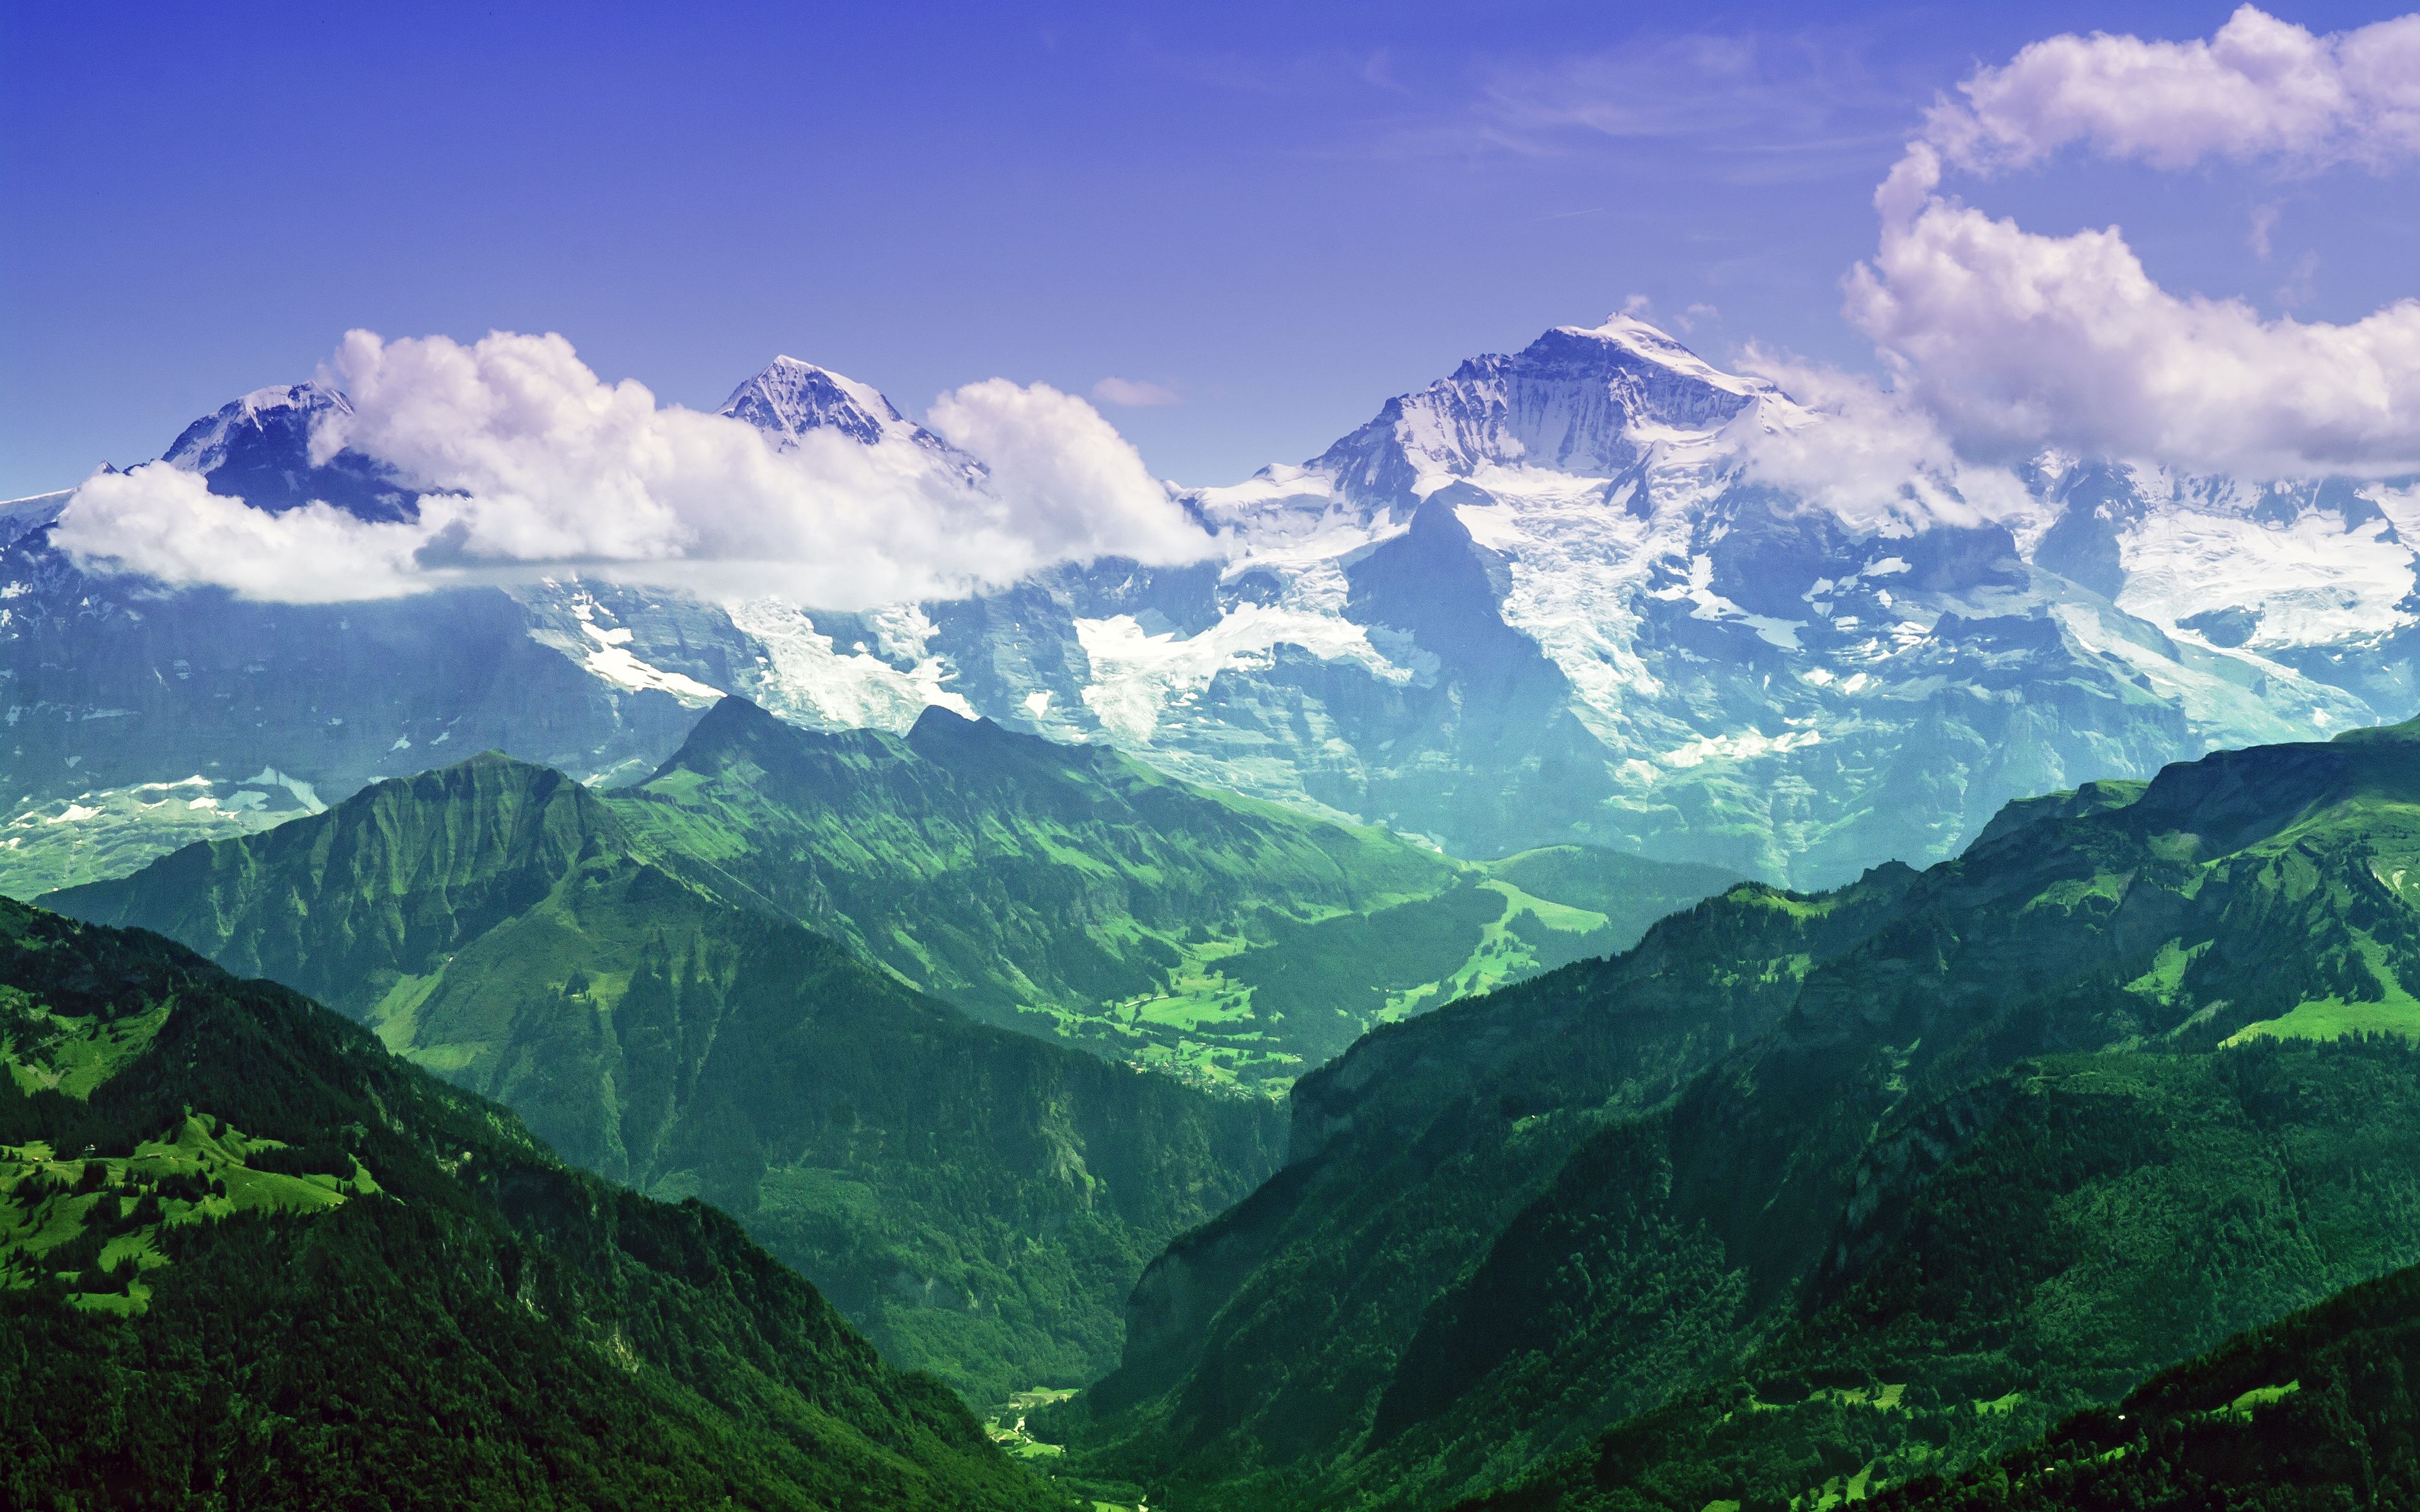 Bernese Alps Switzerland wallpapers and images 3840x2400